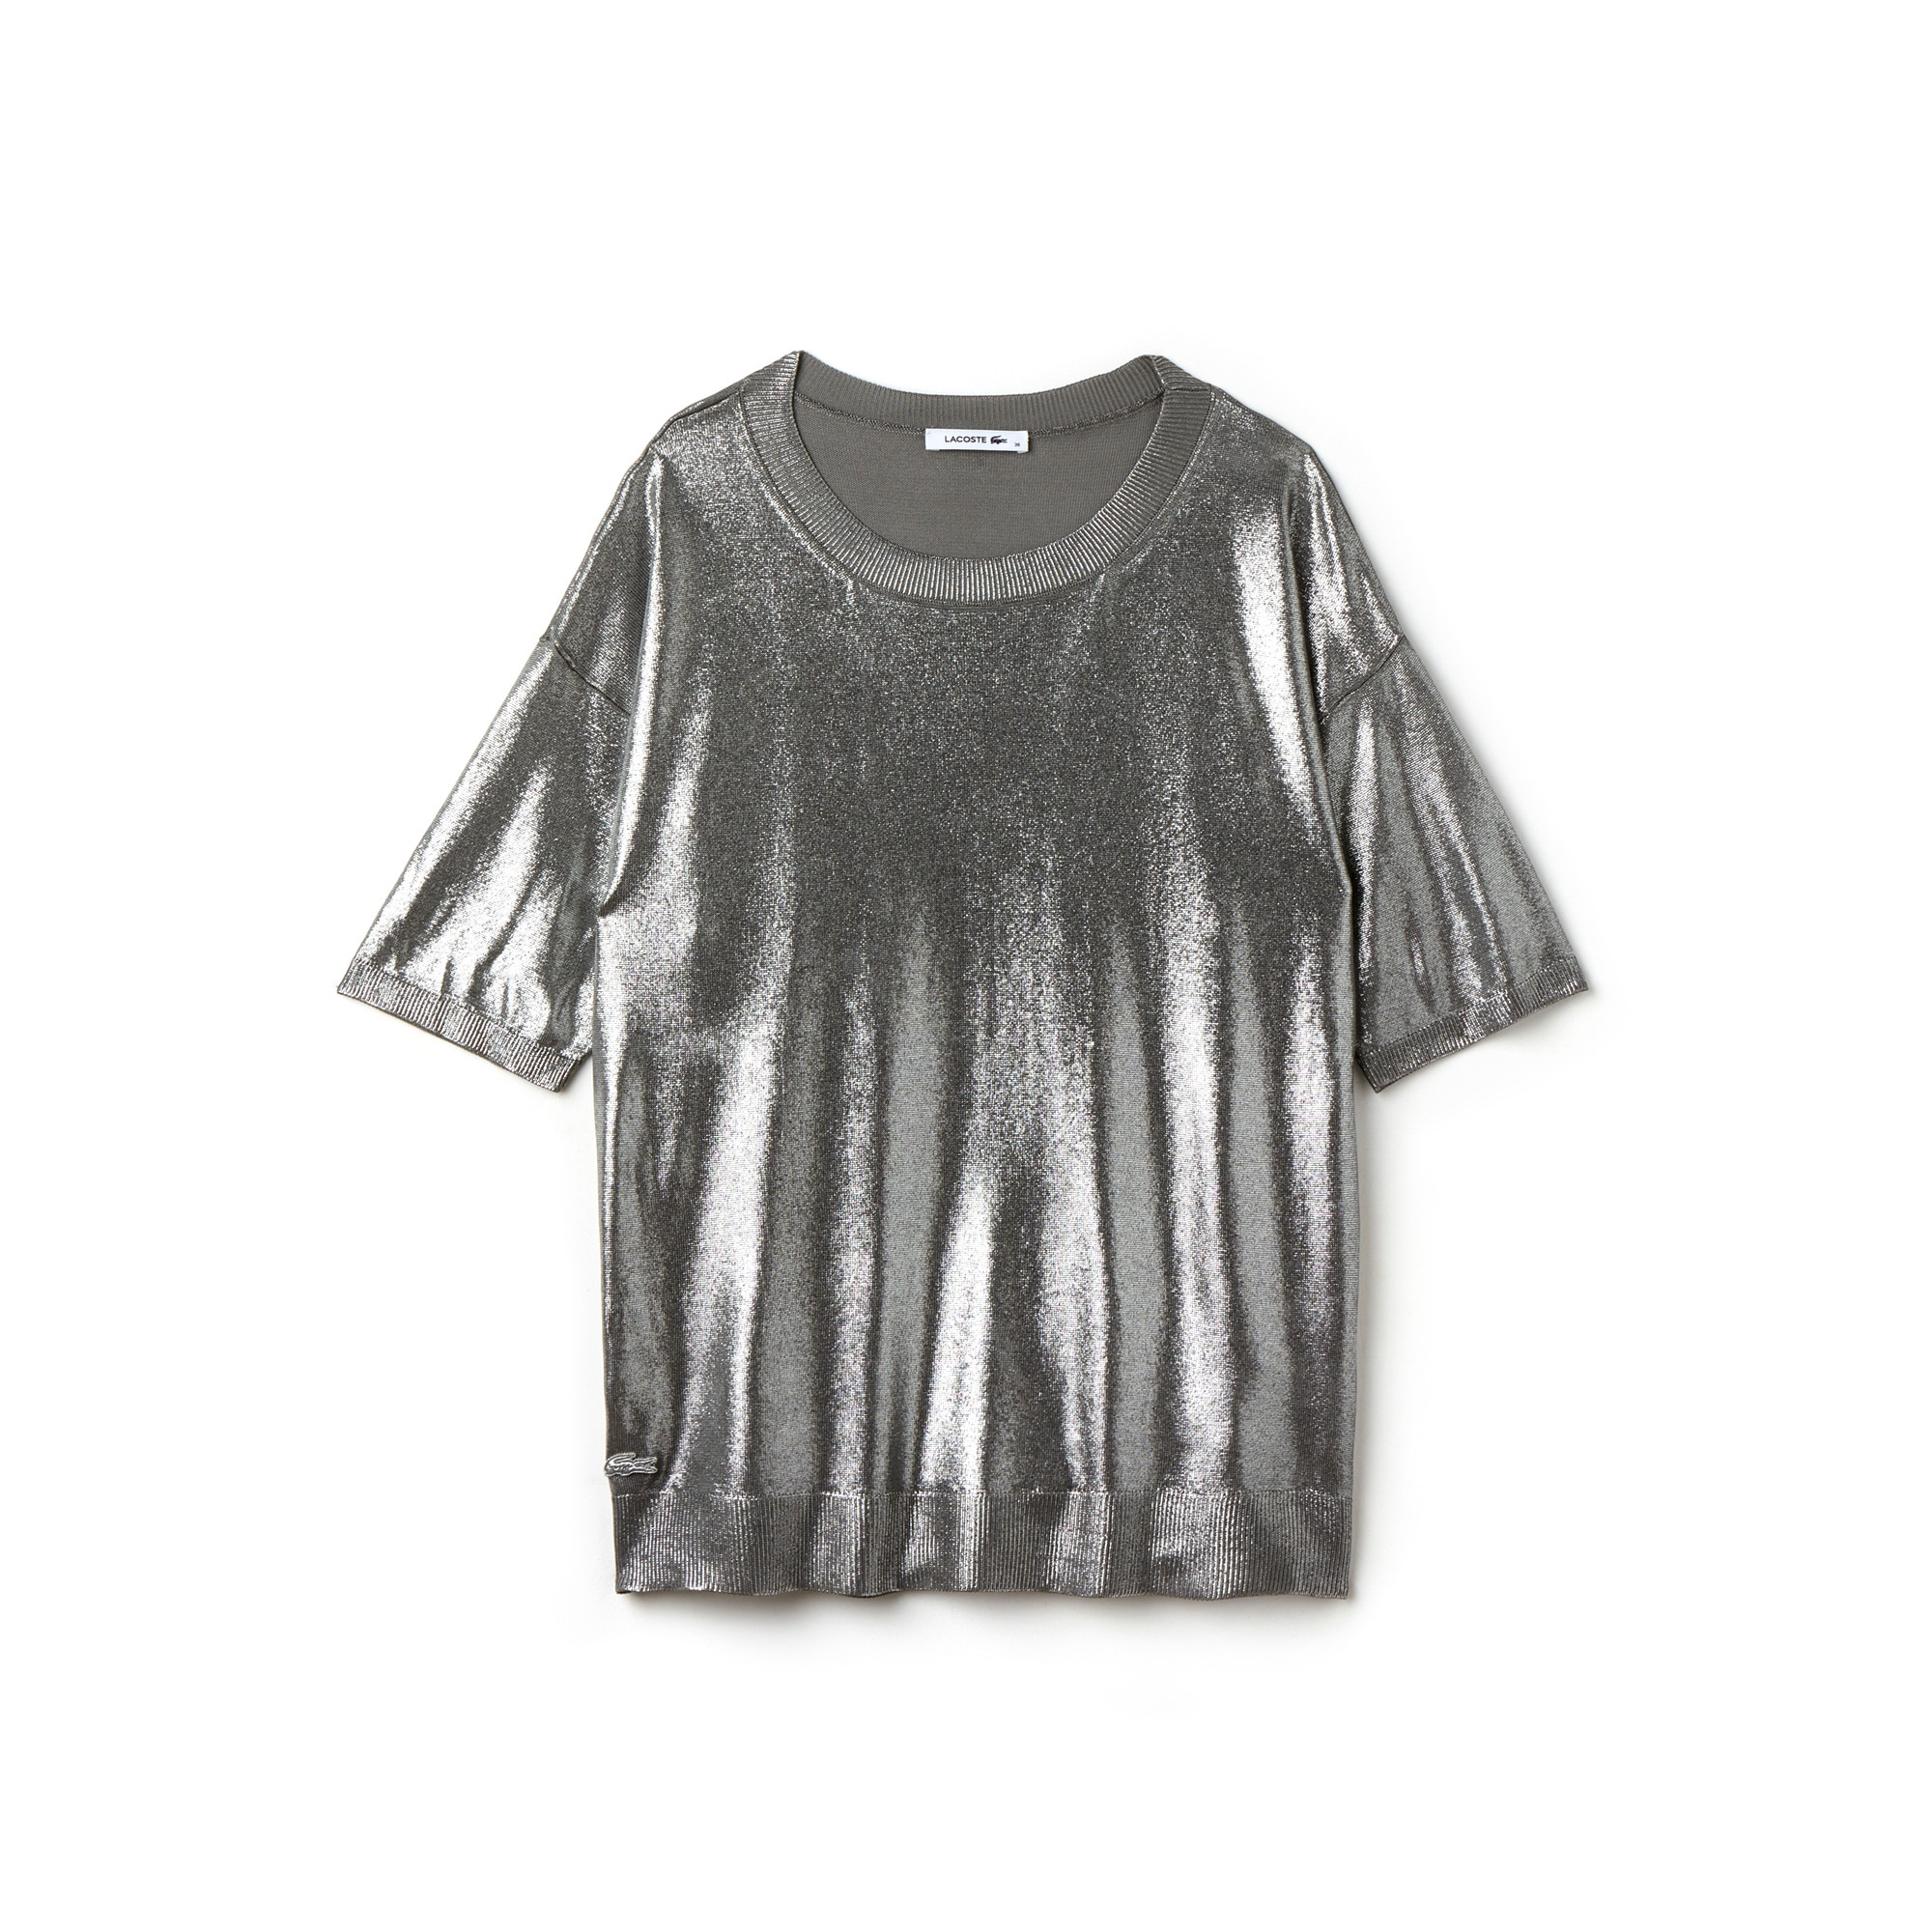 Women's Silver Jersey Flowing Top